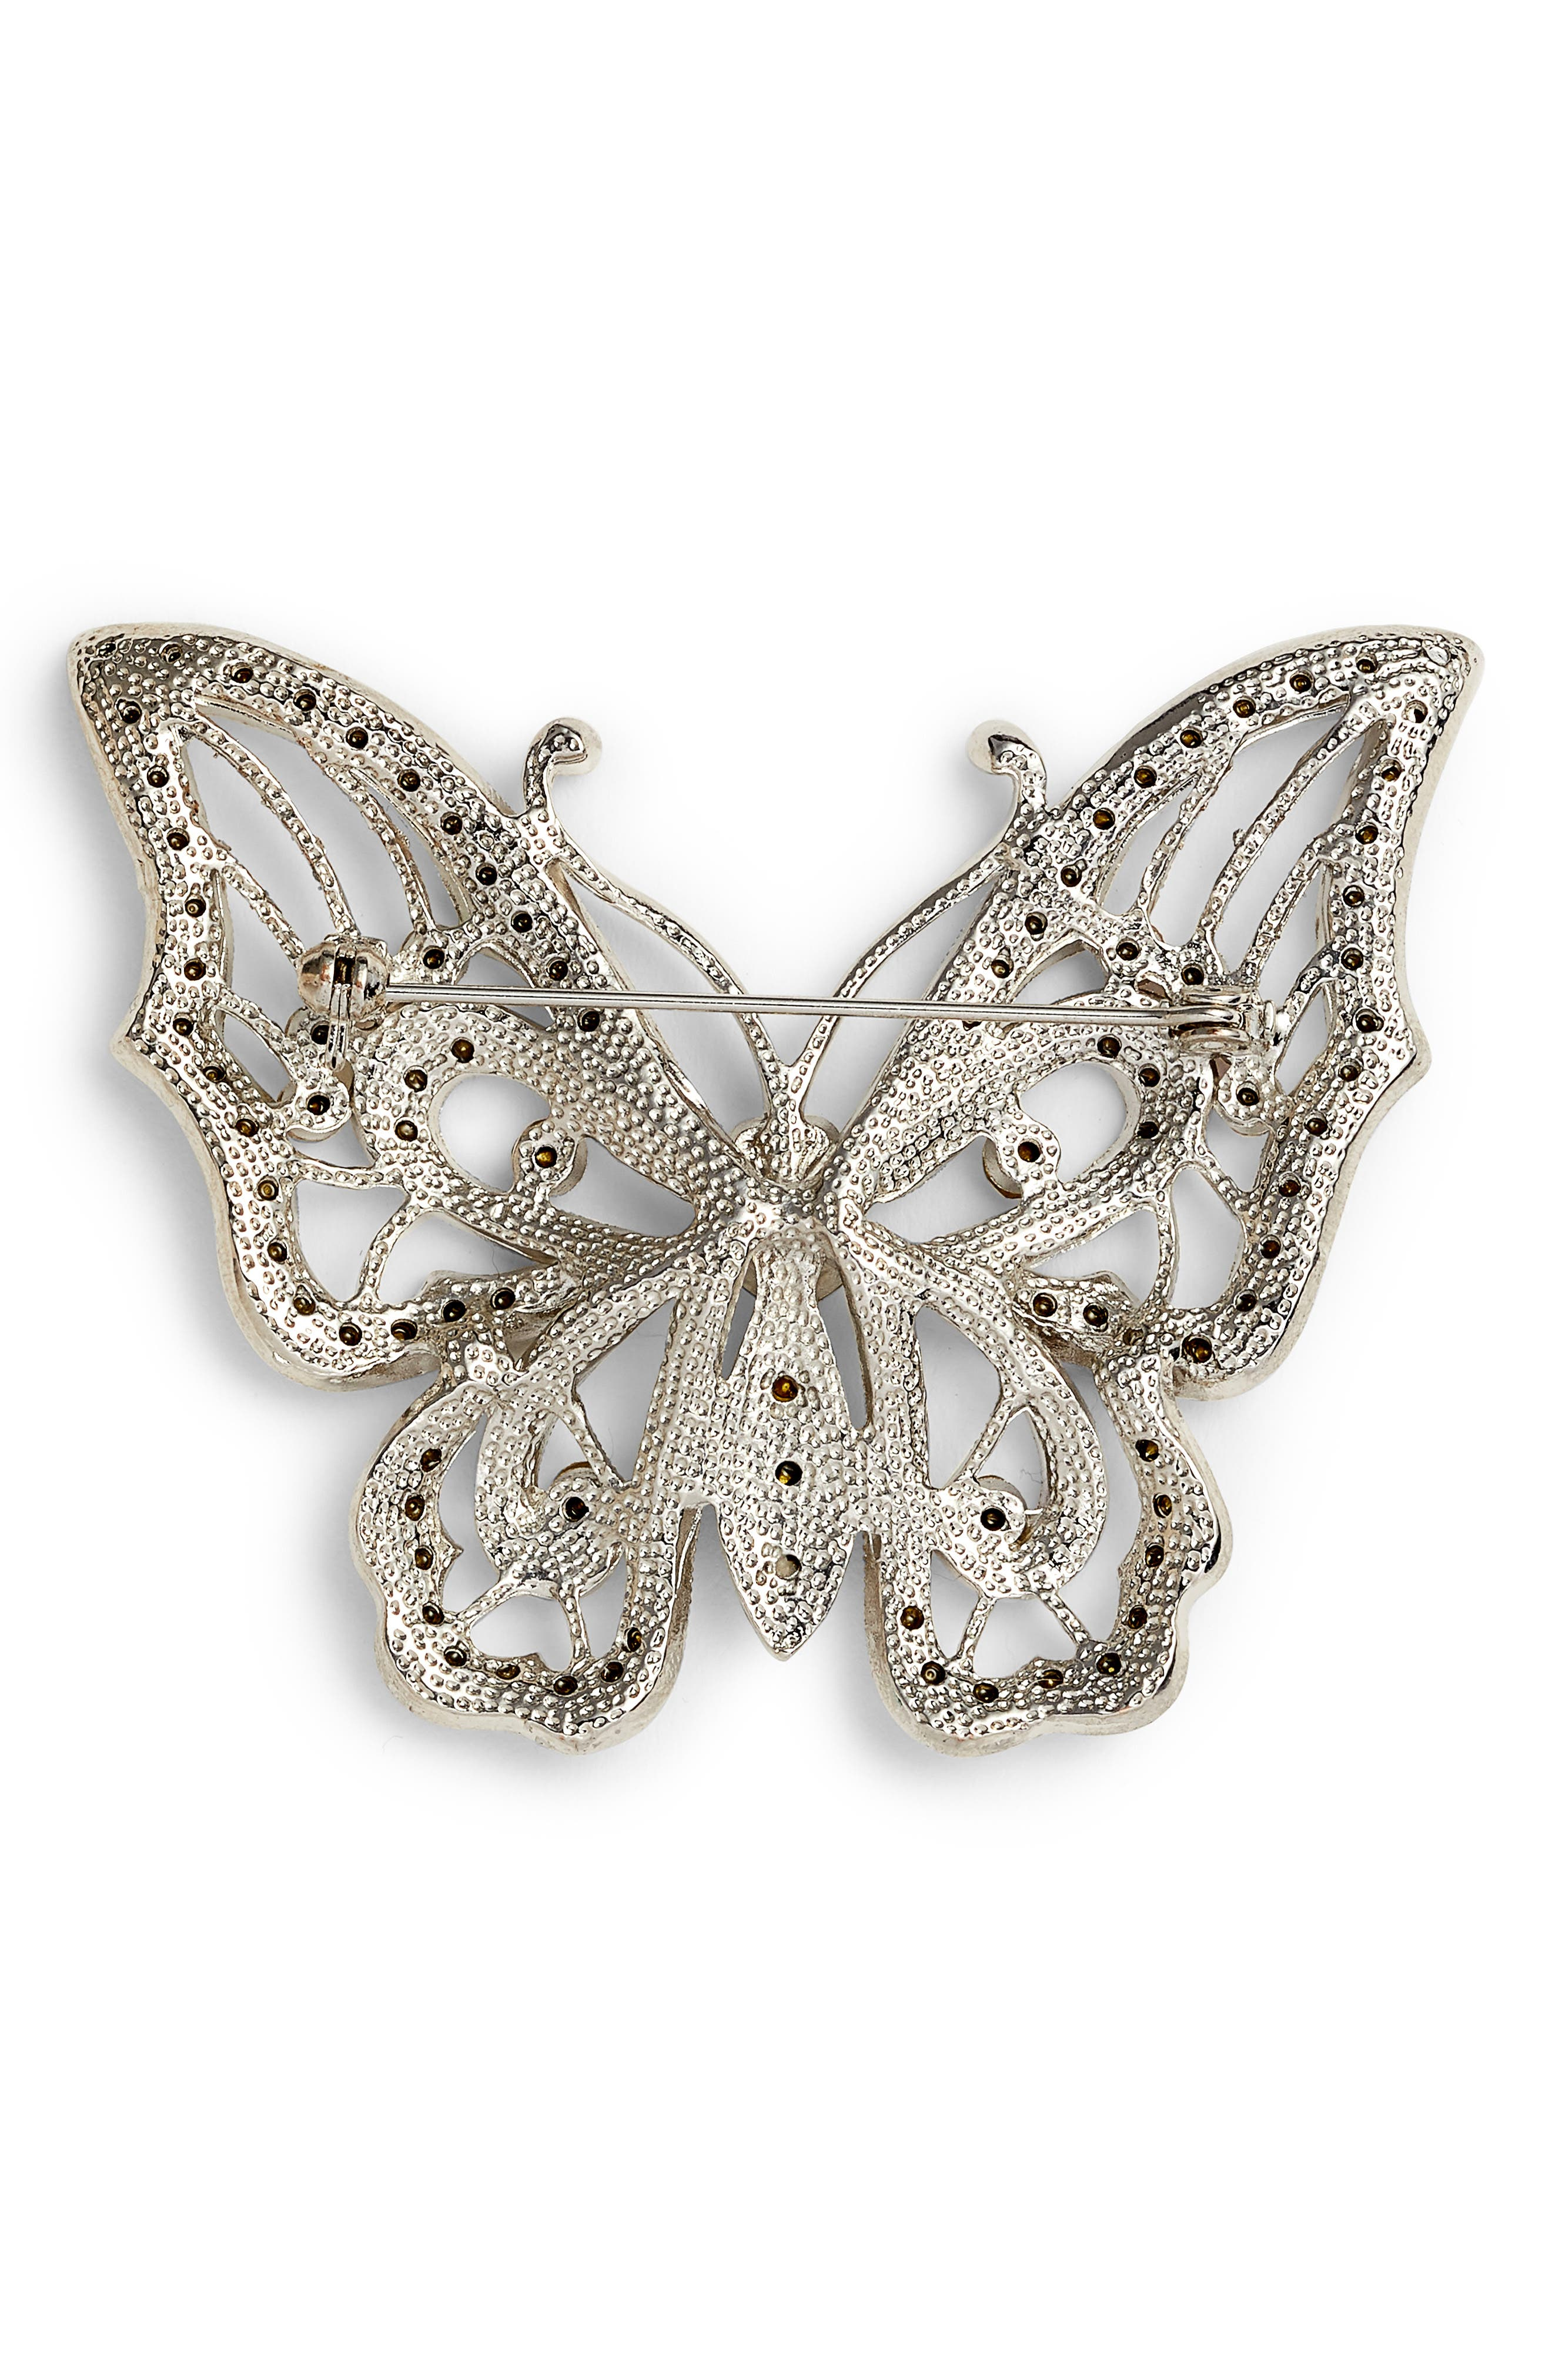 Openwork Pavé Butterfly Brooch,                             Alternate thumbnail 2, color,                             Crystal/ Silver